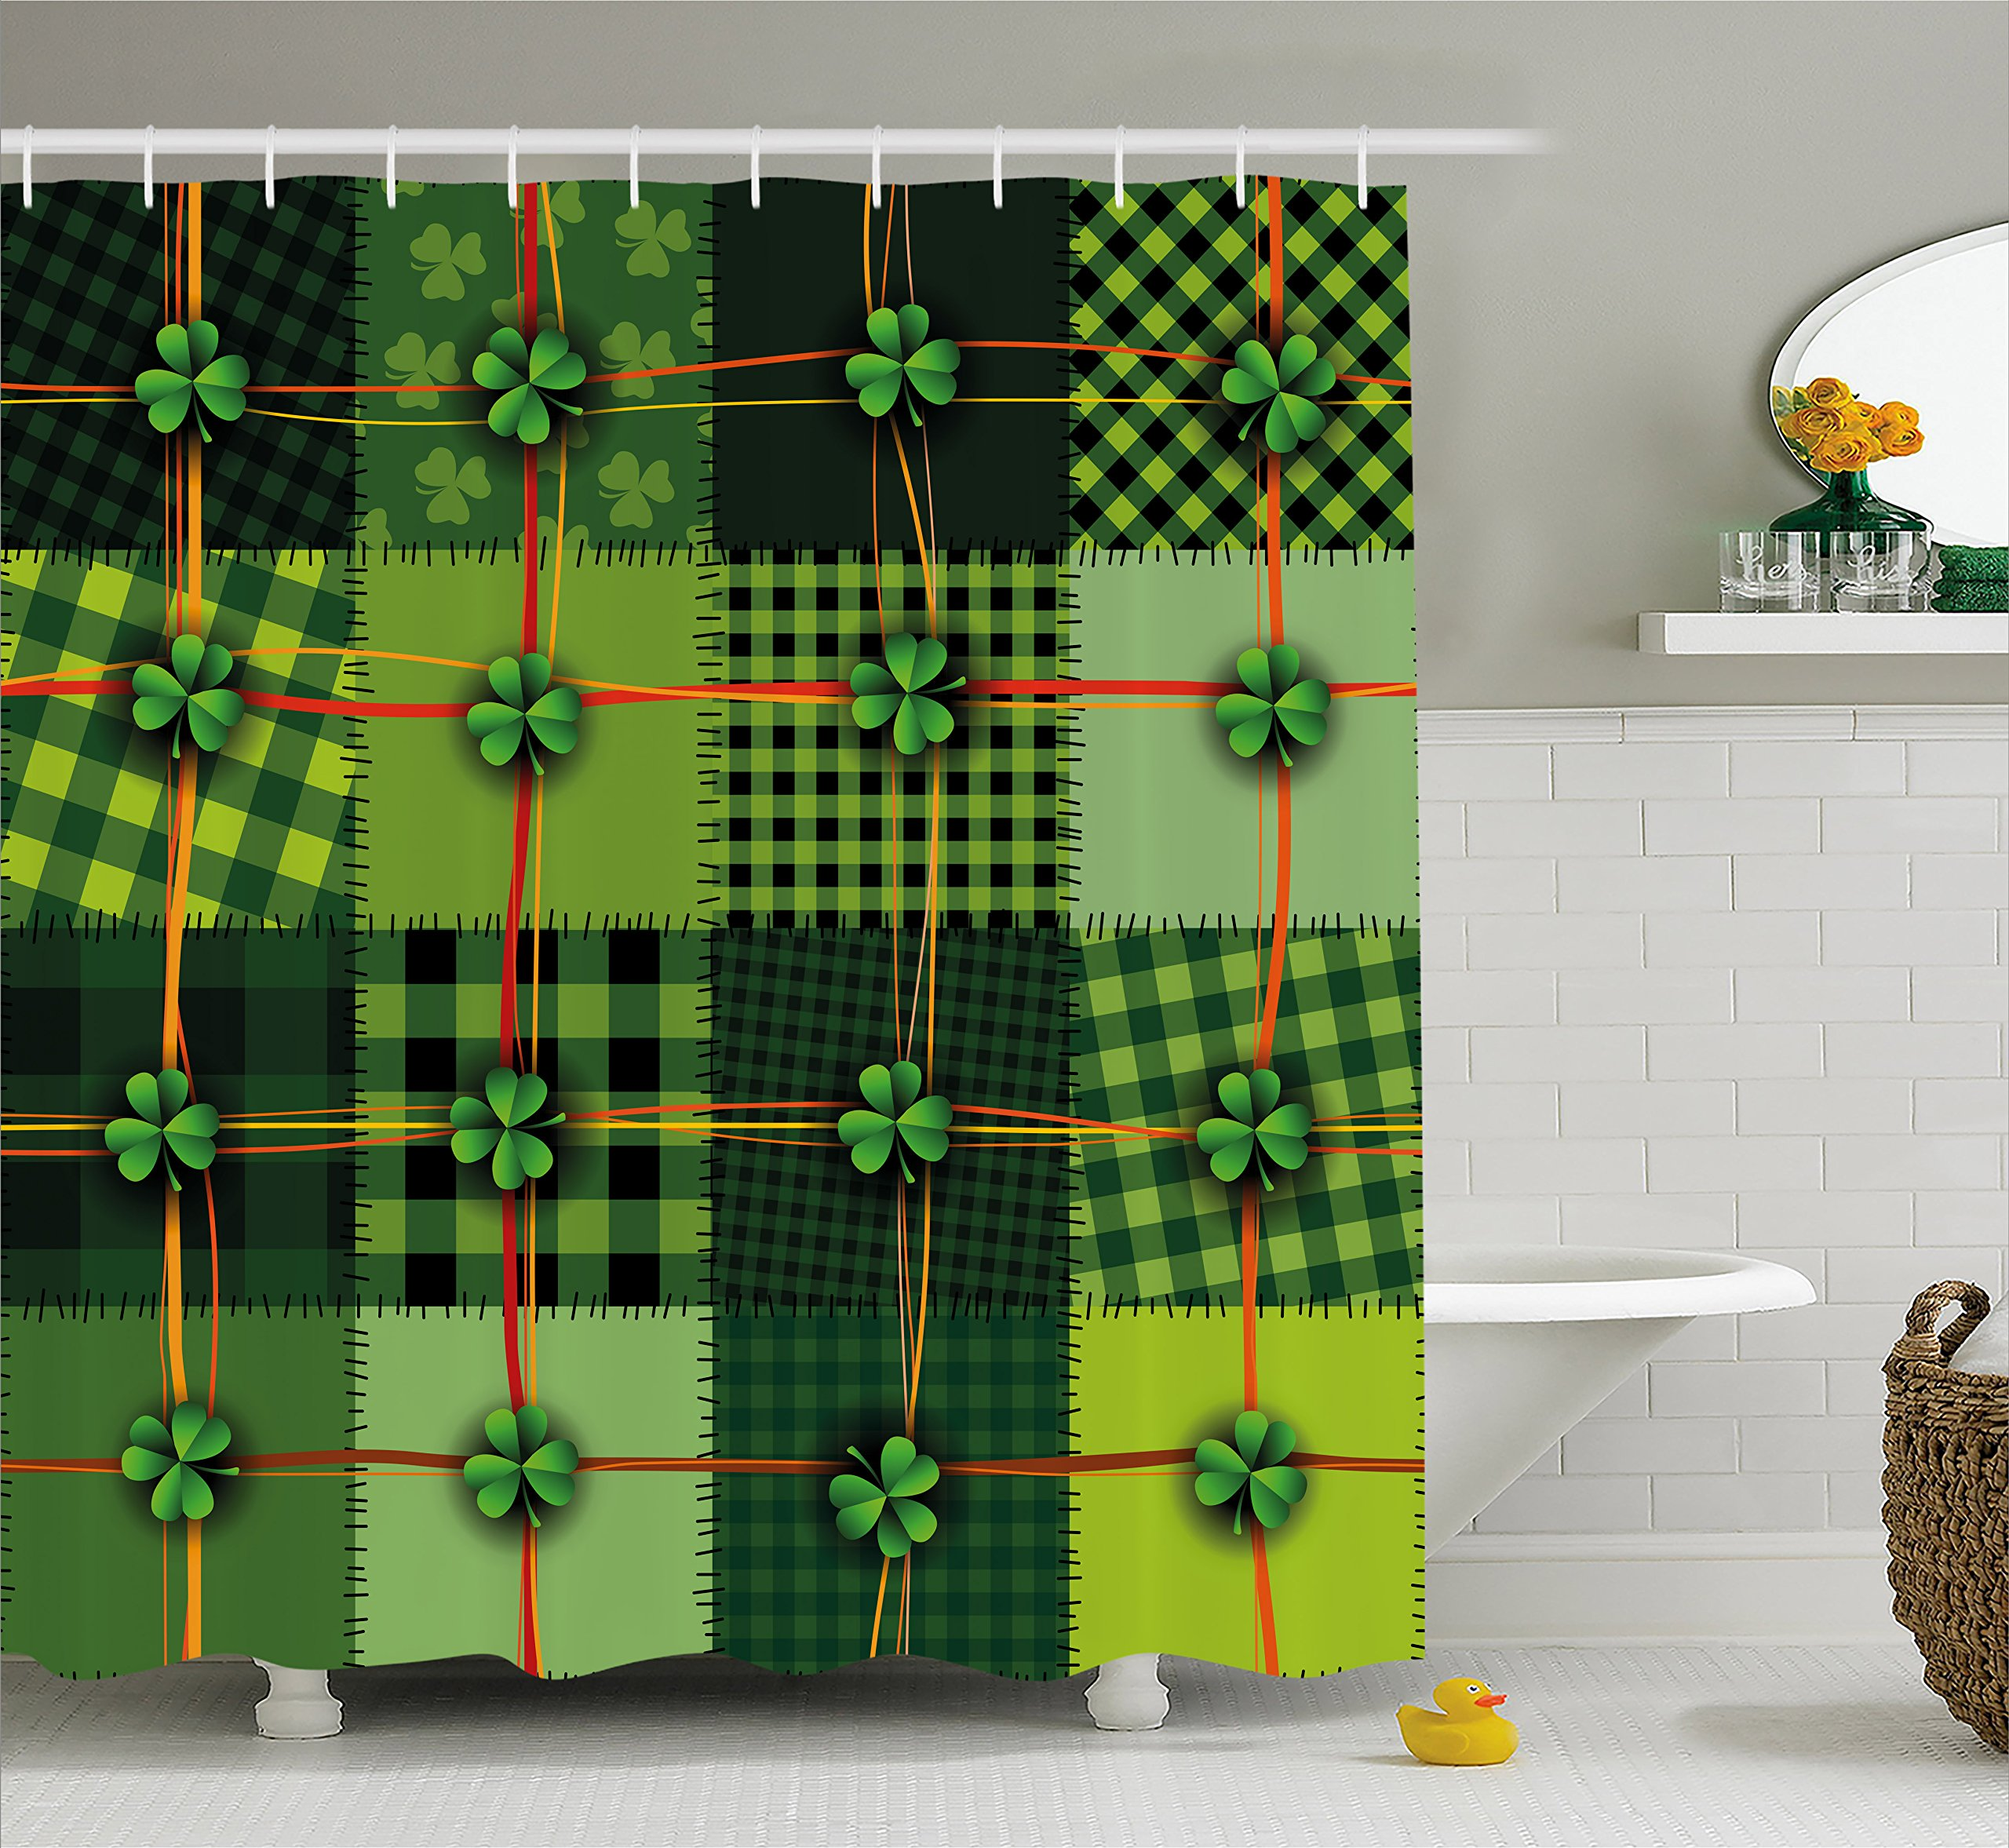 Ambesonne Irish Shower Curtain, Patchwork Style St. Patrick's Day Themed Celtic Quilt Cultural Checkered with Clovers, Fabric Bathroom Decor Set with Hooks, 70 inches, Multicolor